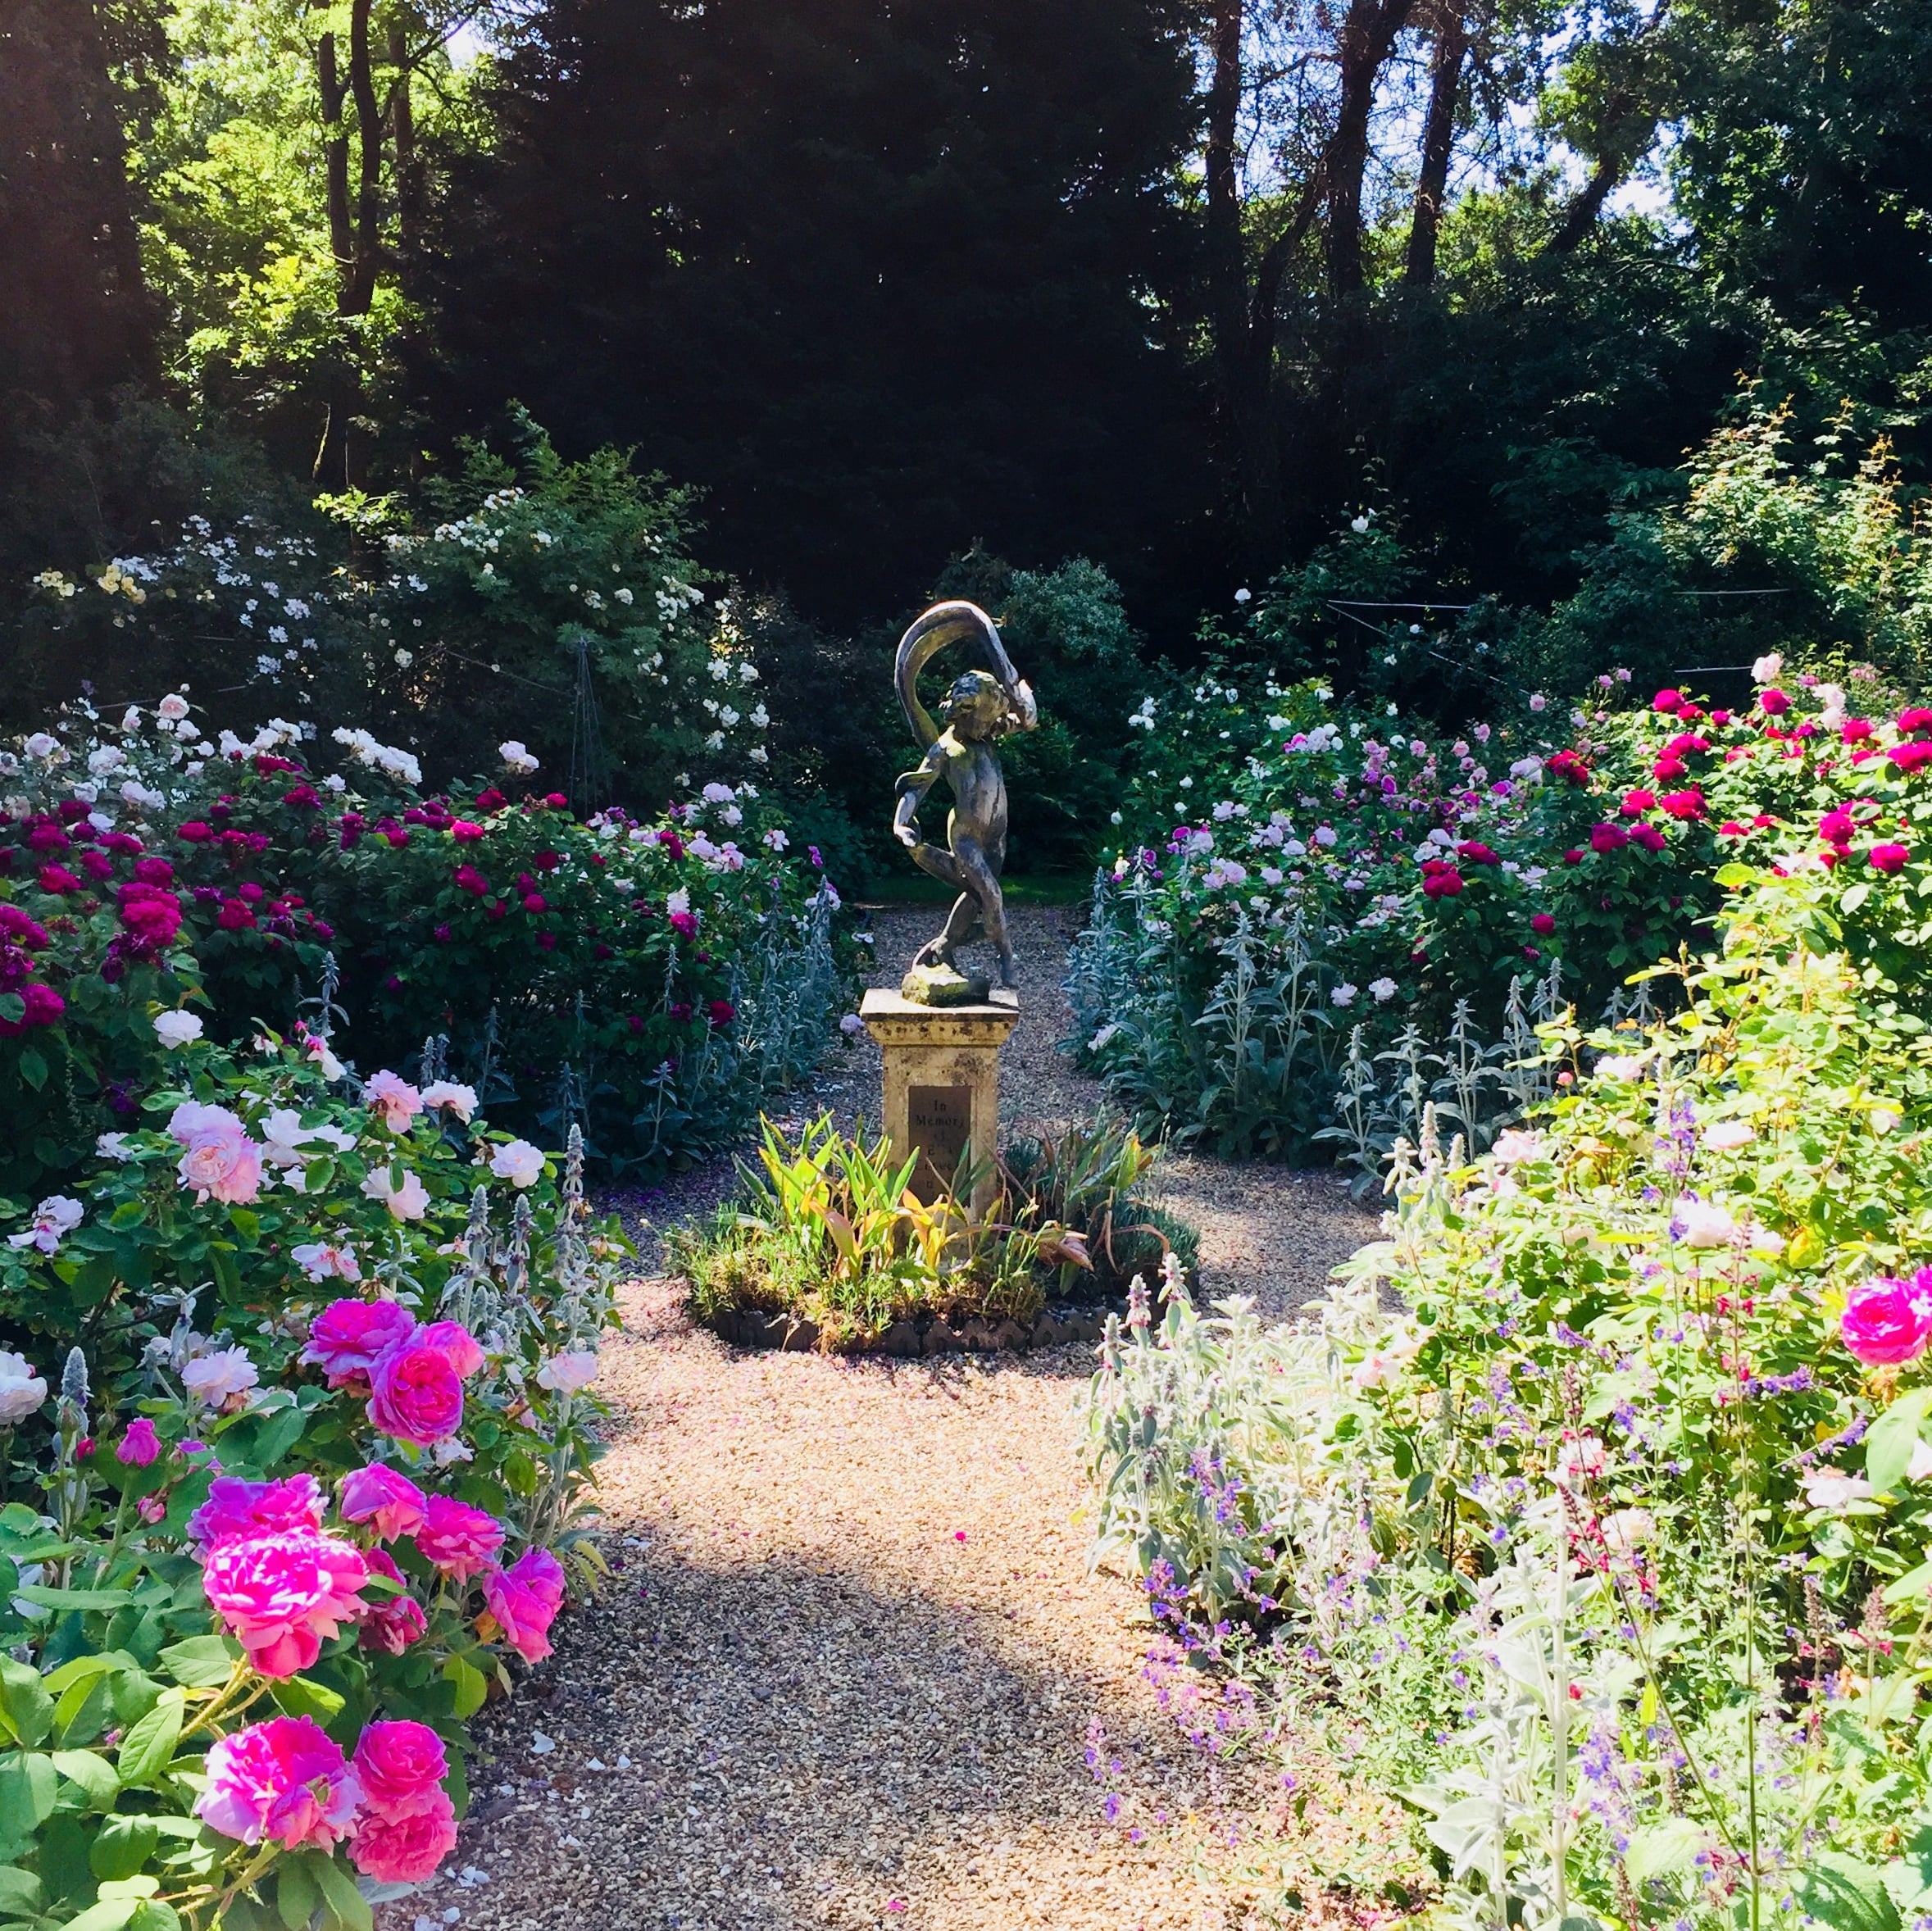 The Rose Garden in bloom at Reveley Lodge